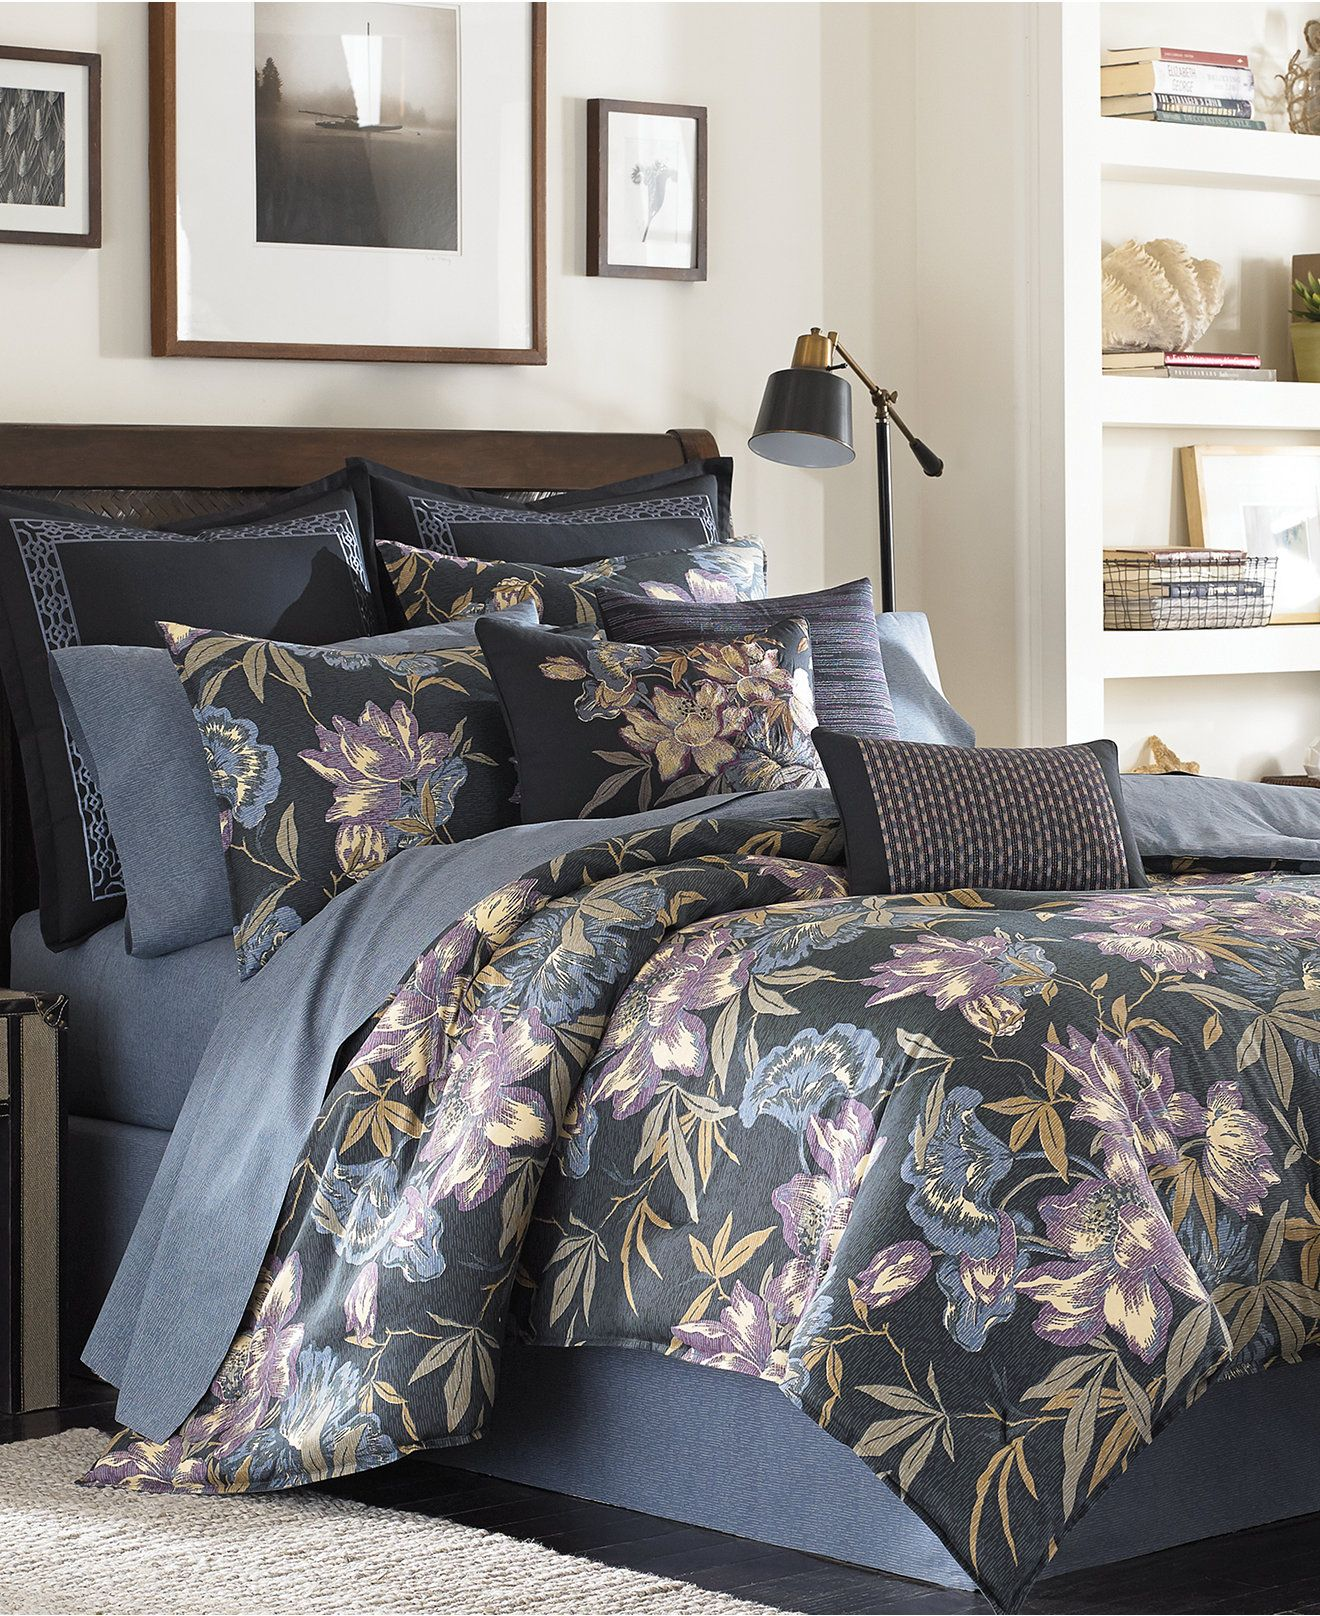 Tommy Bahama Home Kaftan Floral Comforter And Duvet Cover Mini